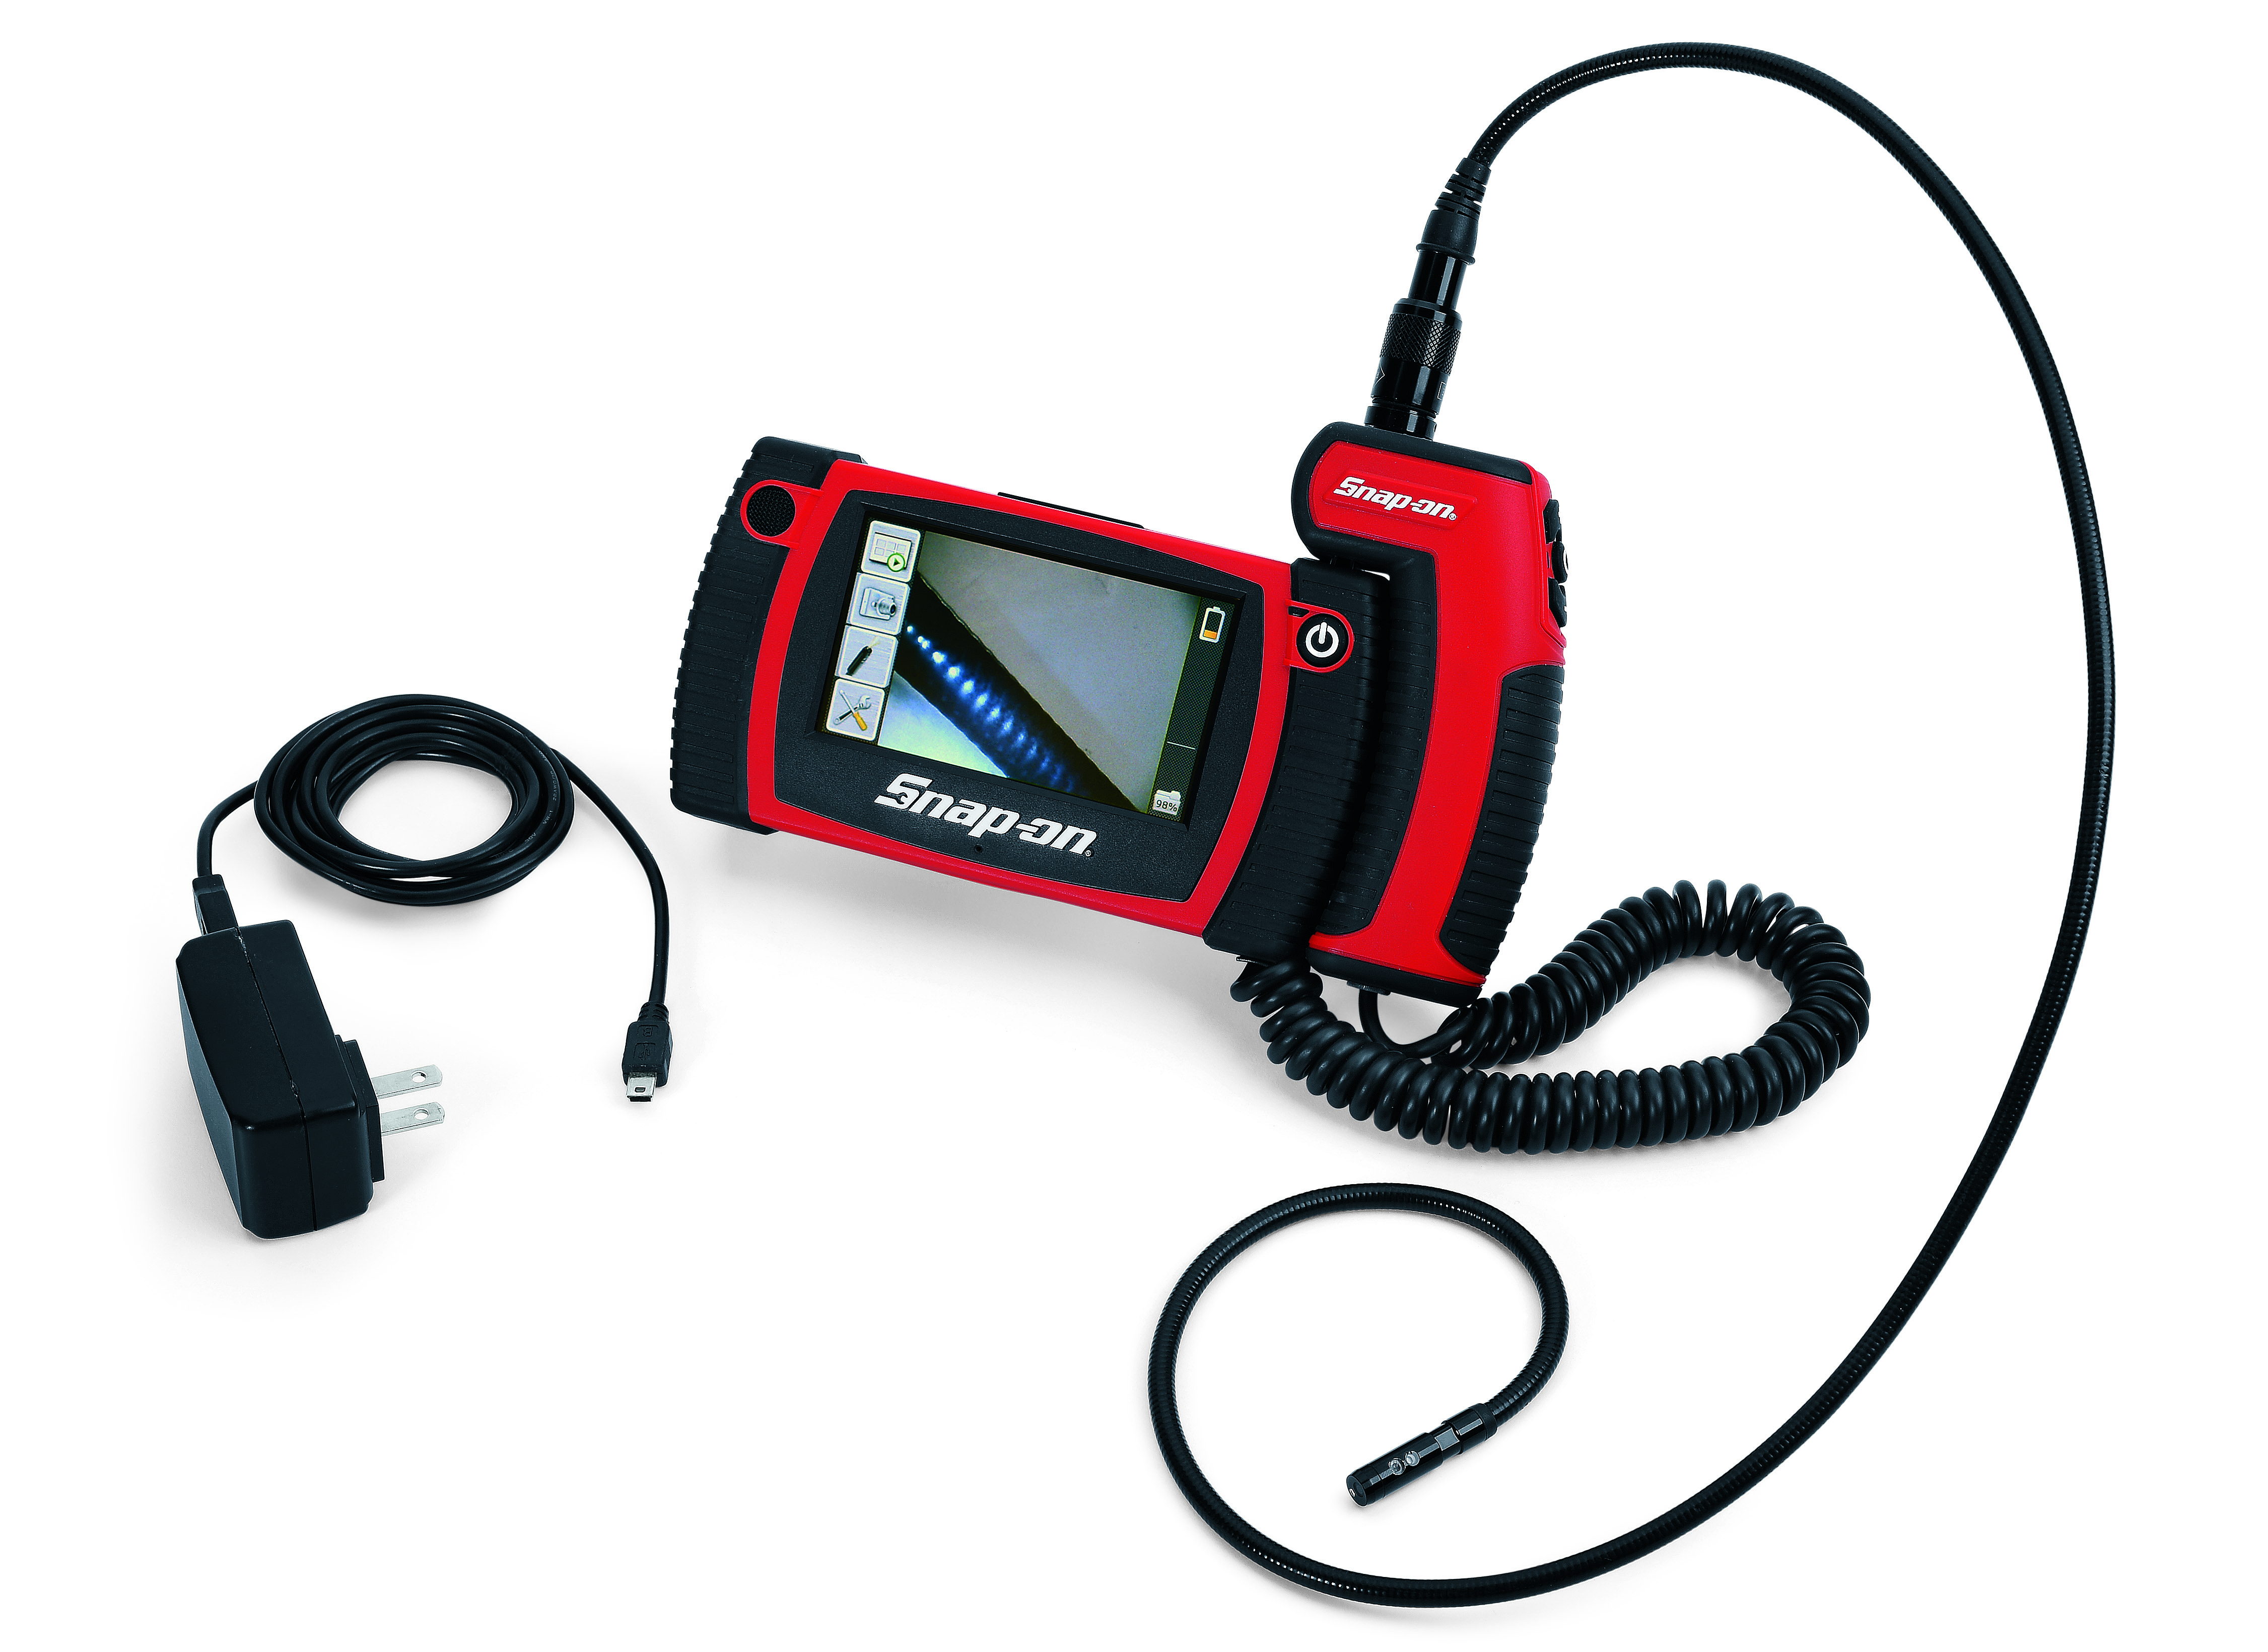 New digital borescope from Snap-on Tools